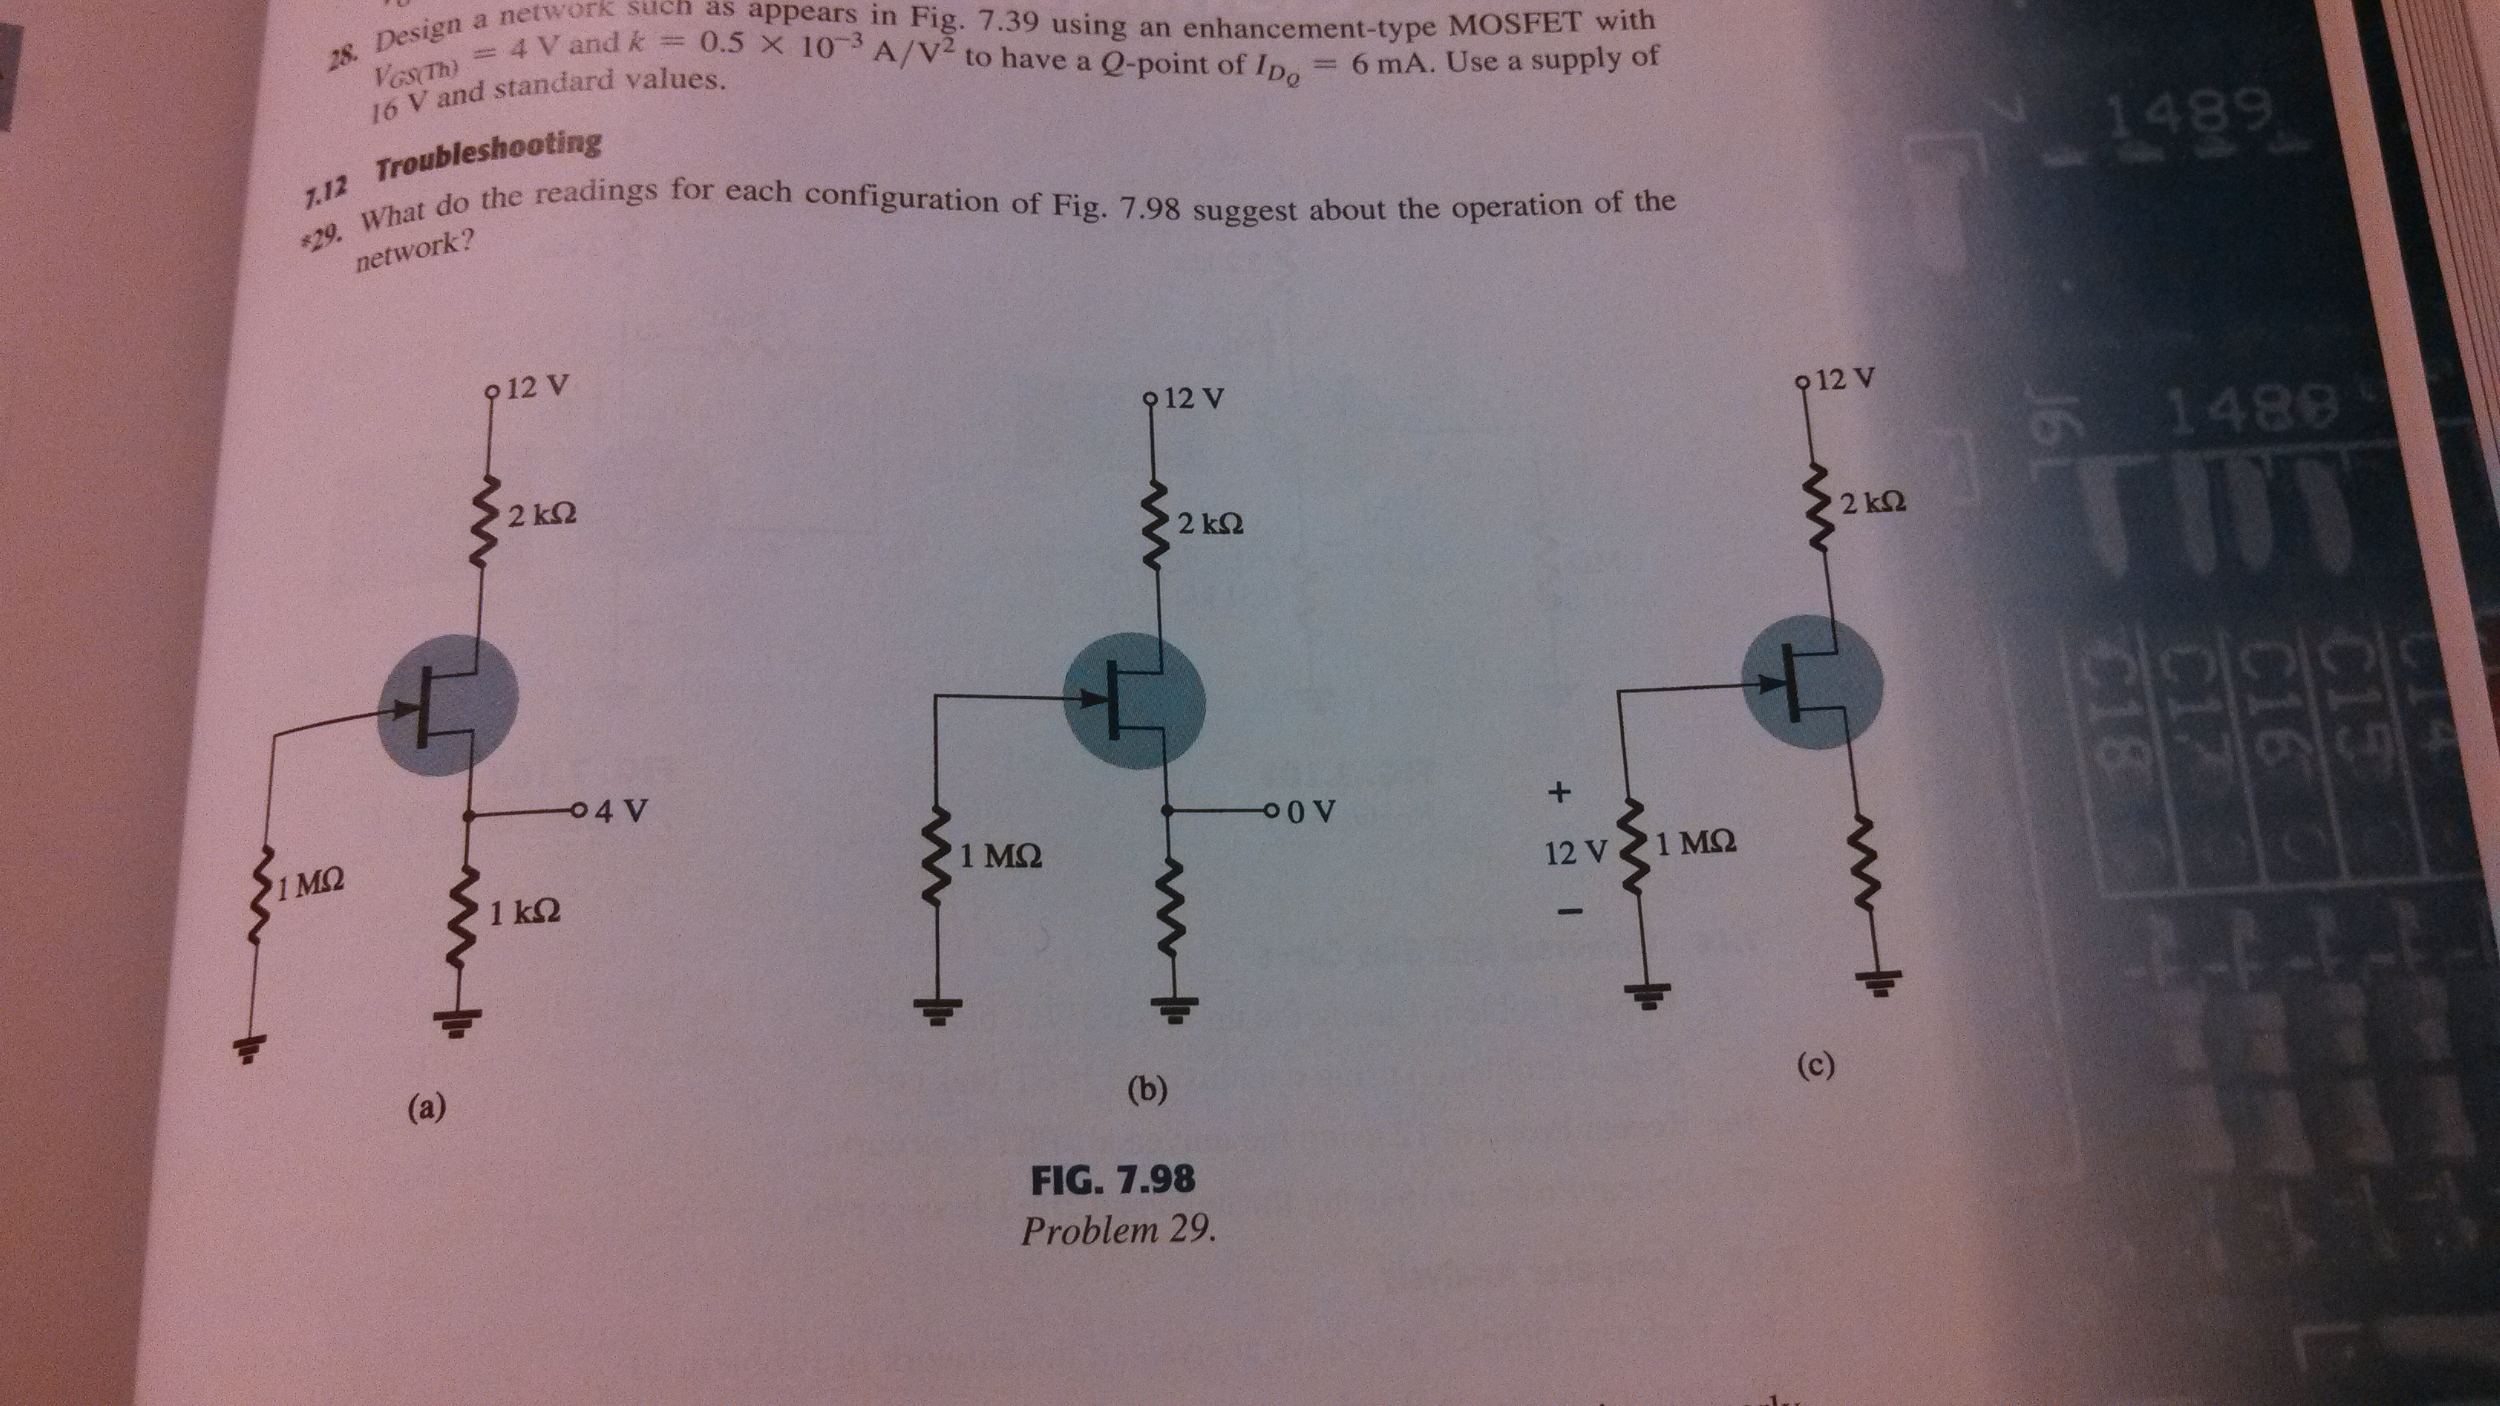 What do the readings for each configuration of fig